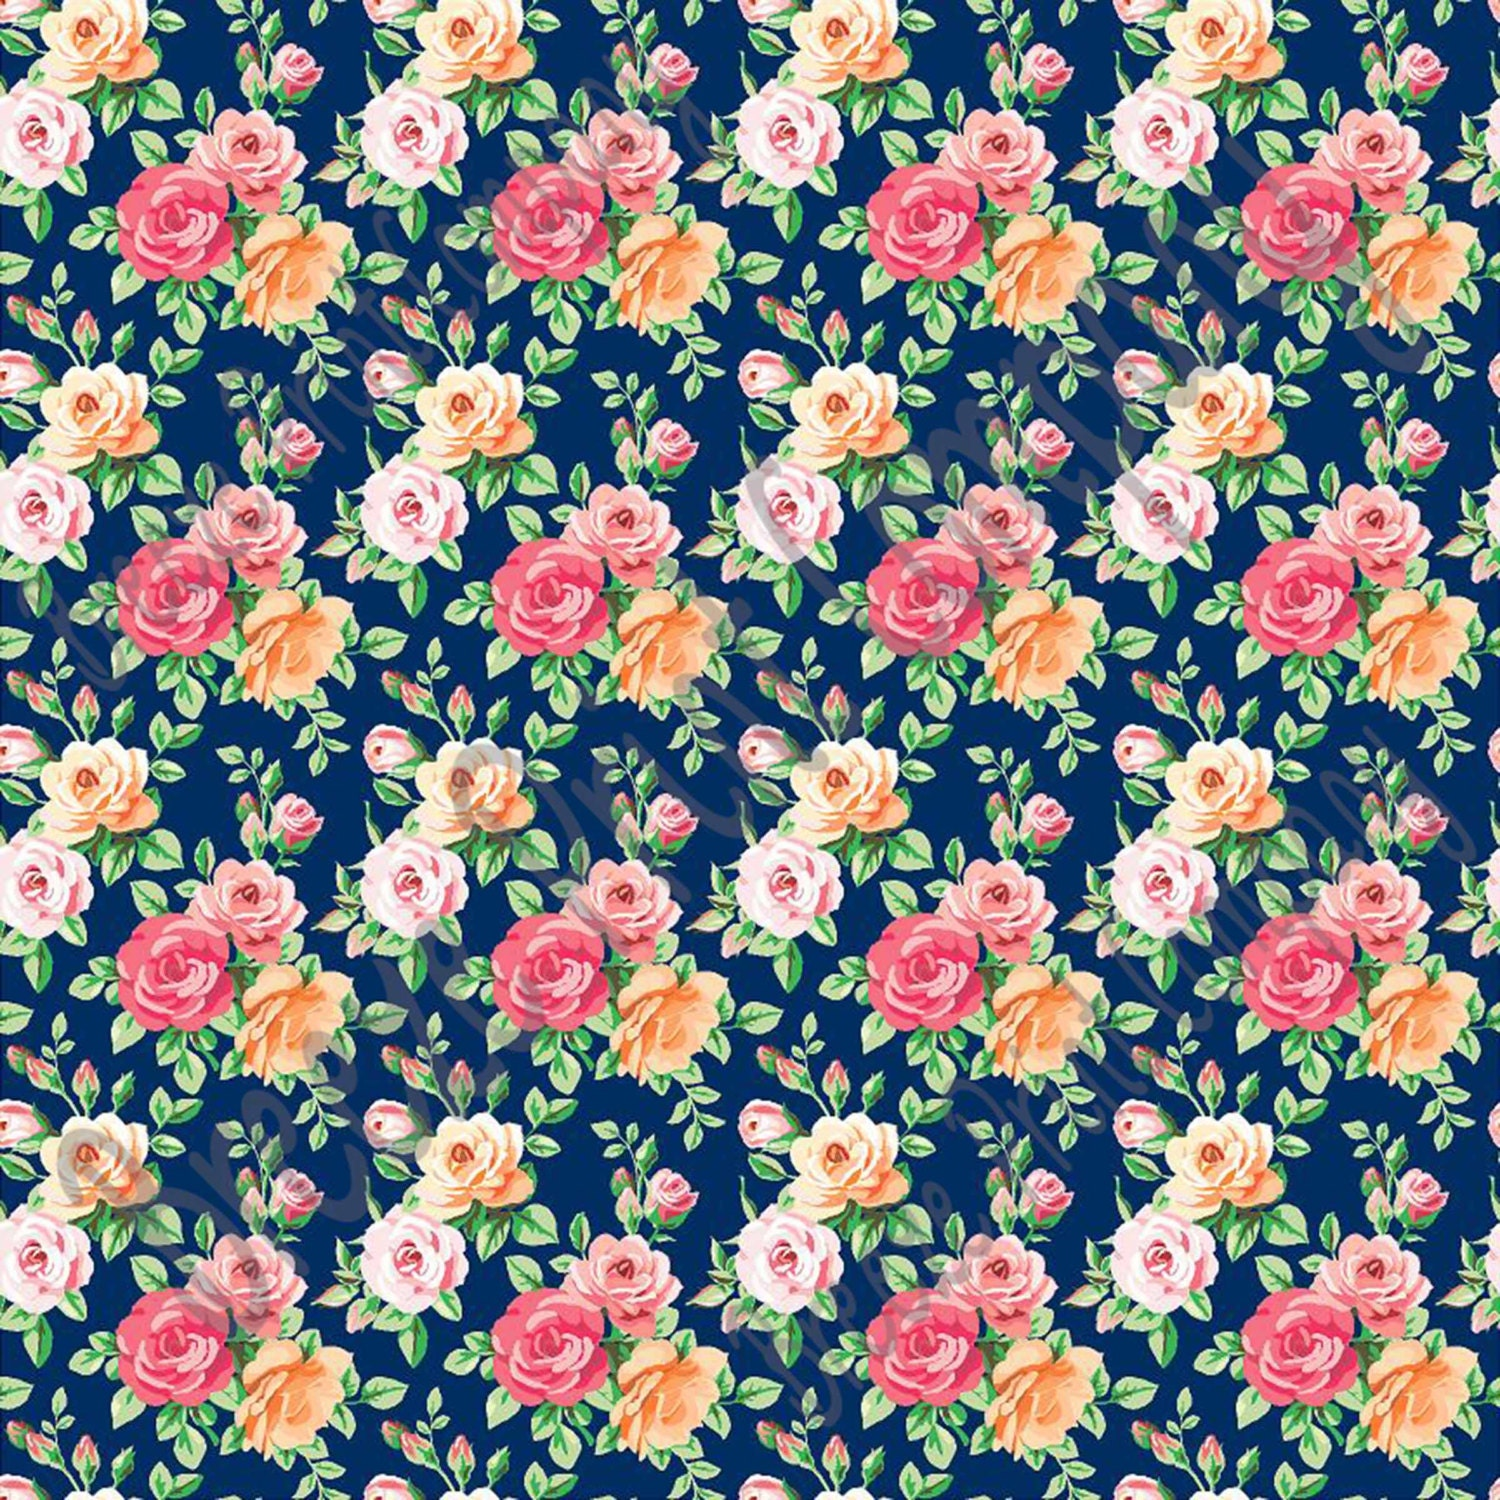 Rose Floral Heat Transfer Or Adhesive Vinyl Sheet With